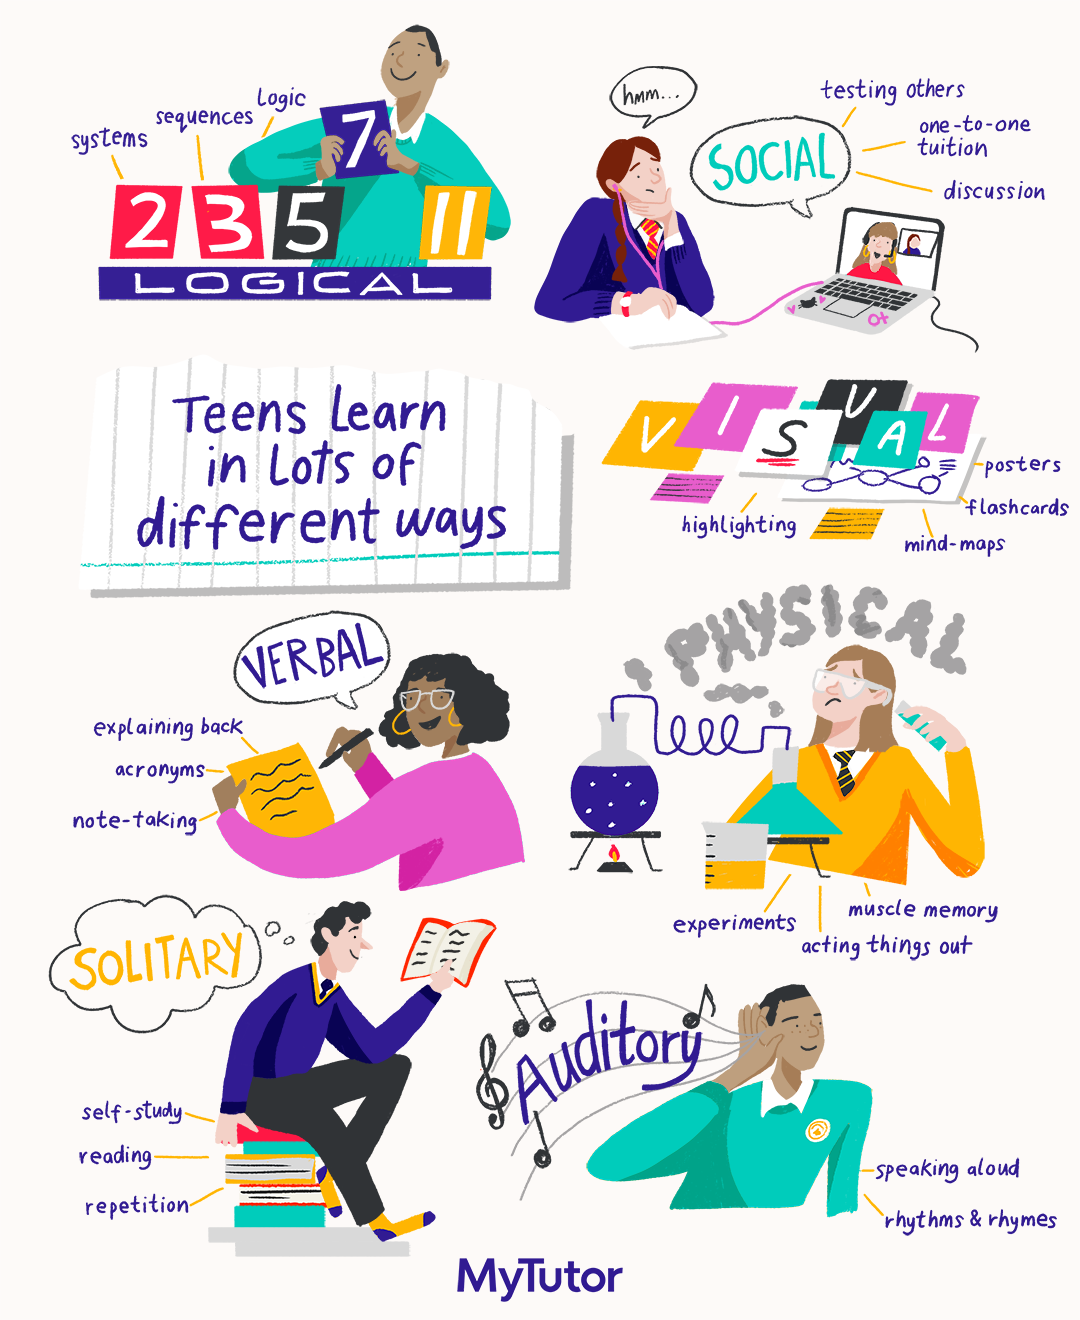 illustration-teens-learn-in-lots-of-different-ways